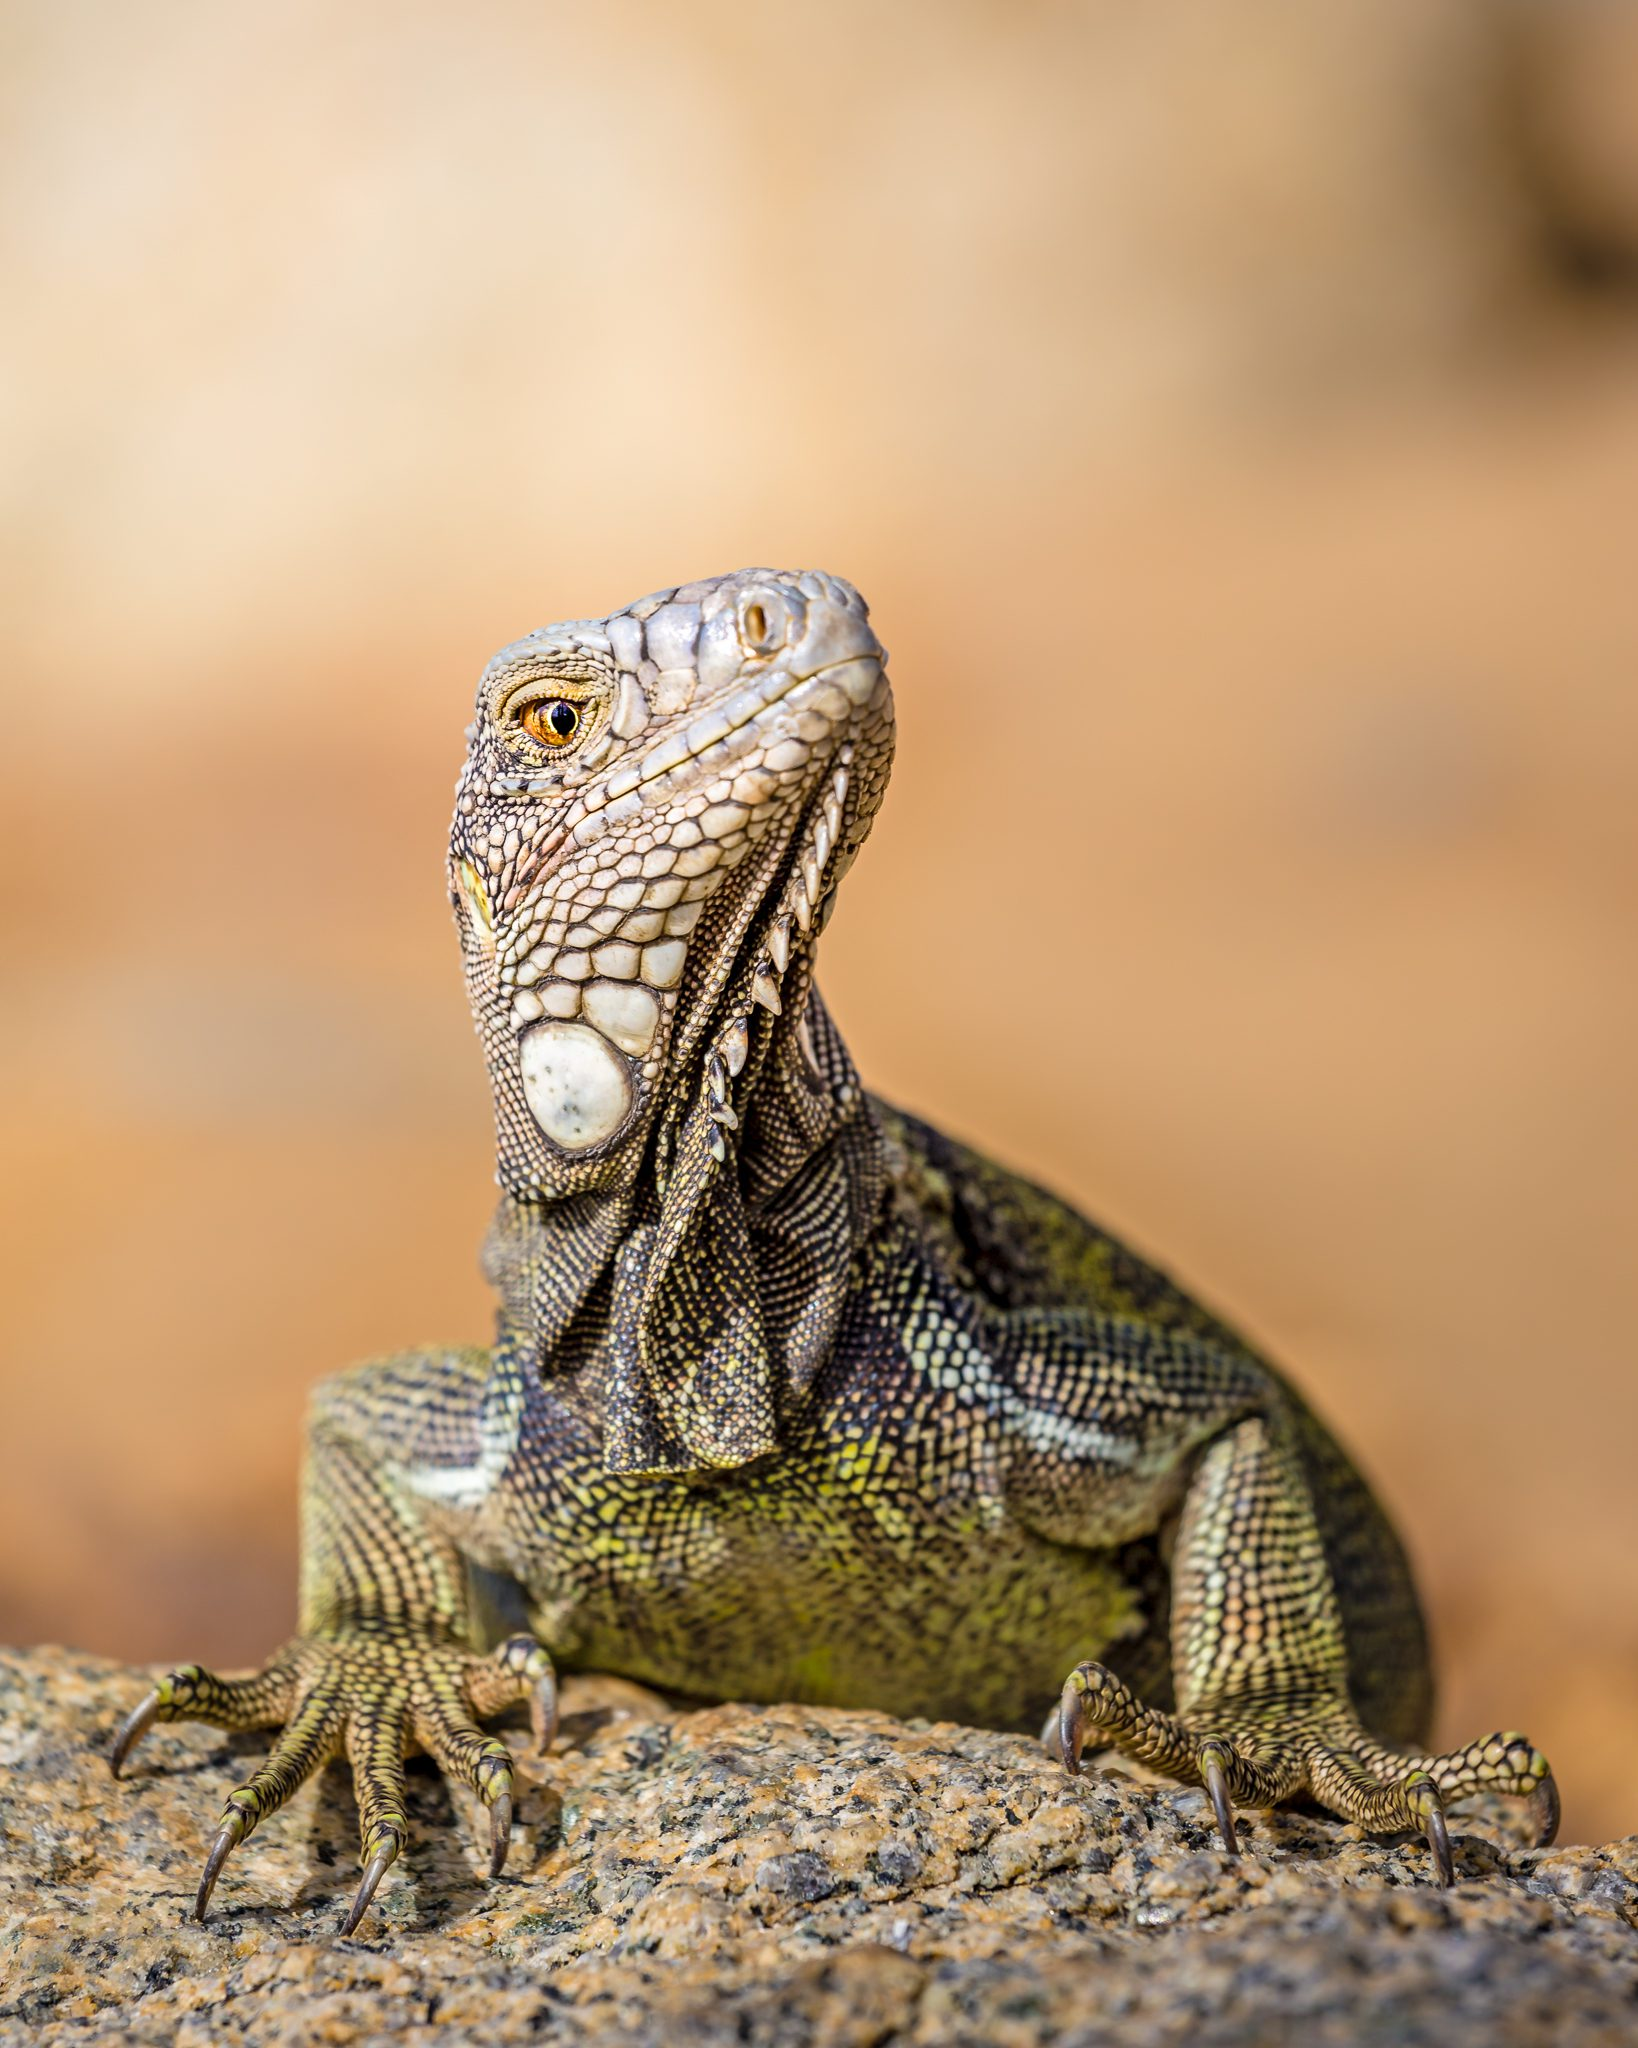 Drogon is searching for the Mother of Dragons. Any GOT fans here?  In reality, this is a close-up photo of the green iguana (Iguana iguana) from Aruba. And although large and intimidating looking lizards, they are mostly herbivorous.